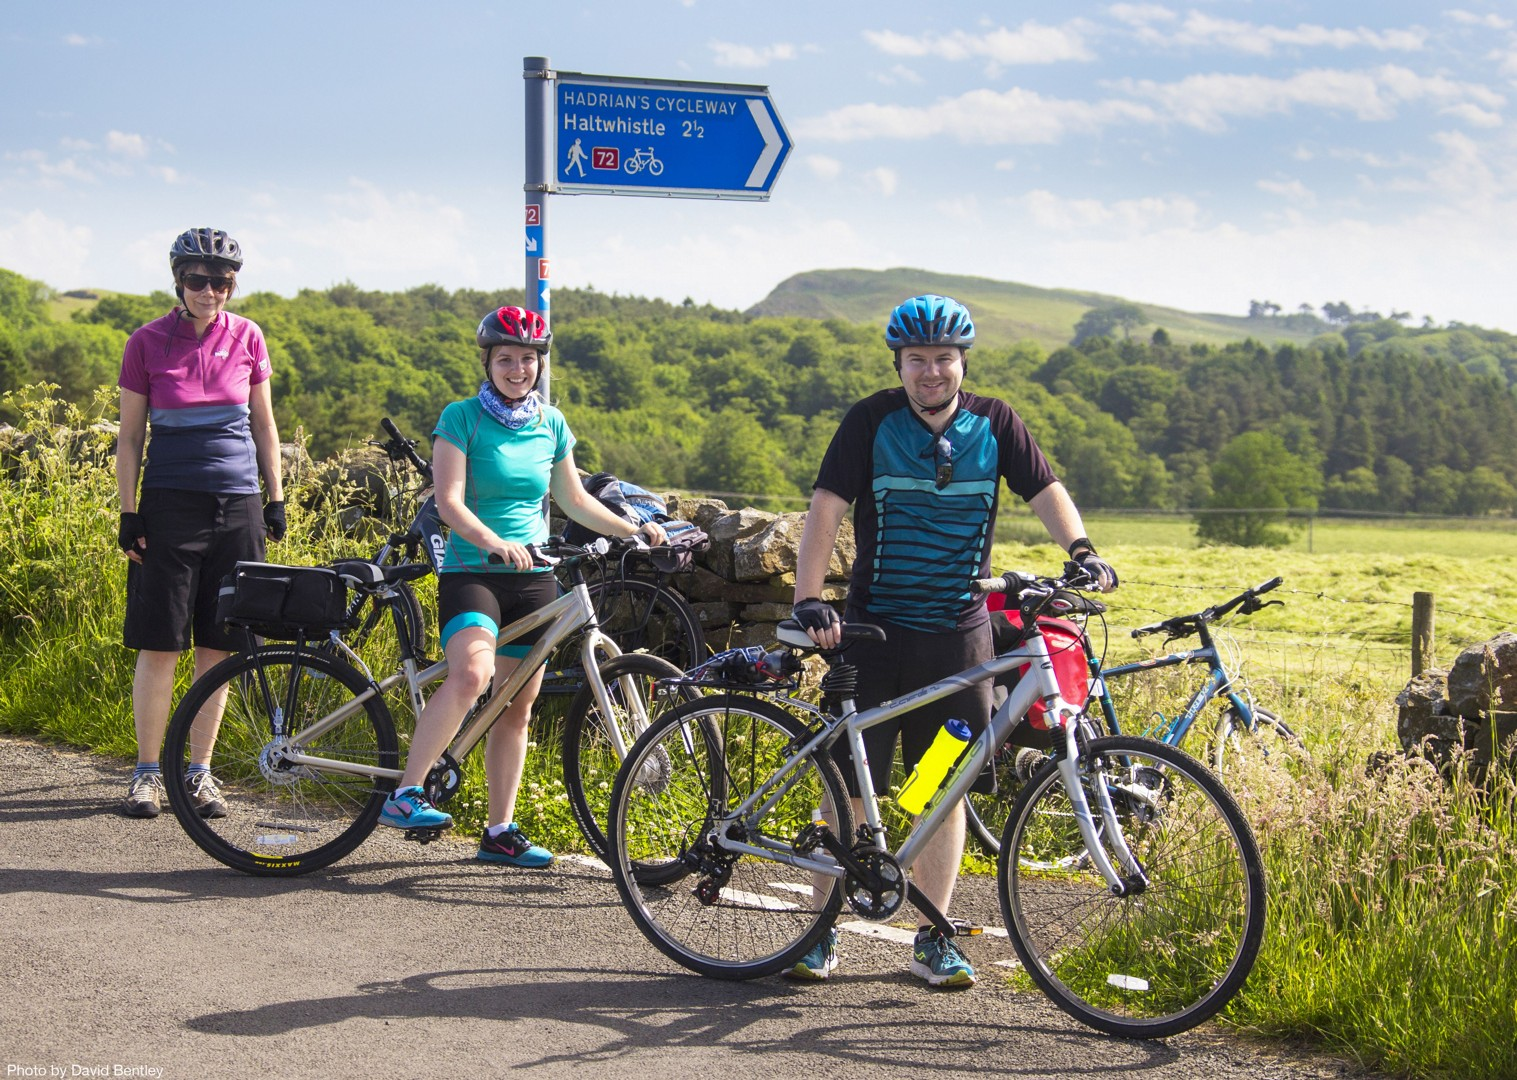 Hadrians-Cycleway-Self-Guided-Leisure-Cycling-Holiday-North-Pennines.jpg - UK - Hadrian's Cycleway - 4 Days Cycling - Self-Guided Leisure Cycling Holiday - Leisure Cycling